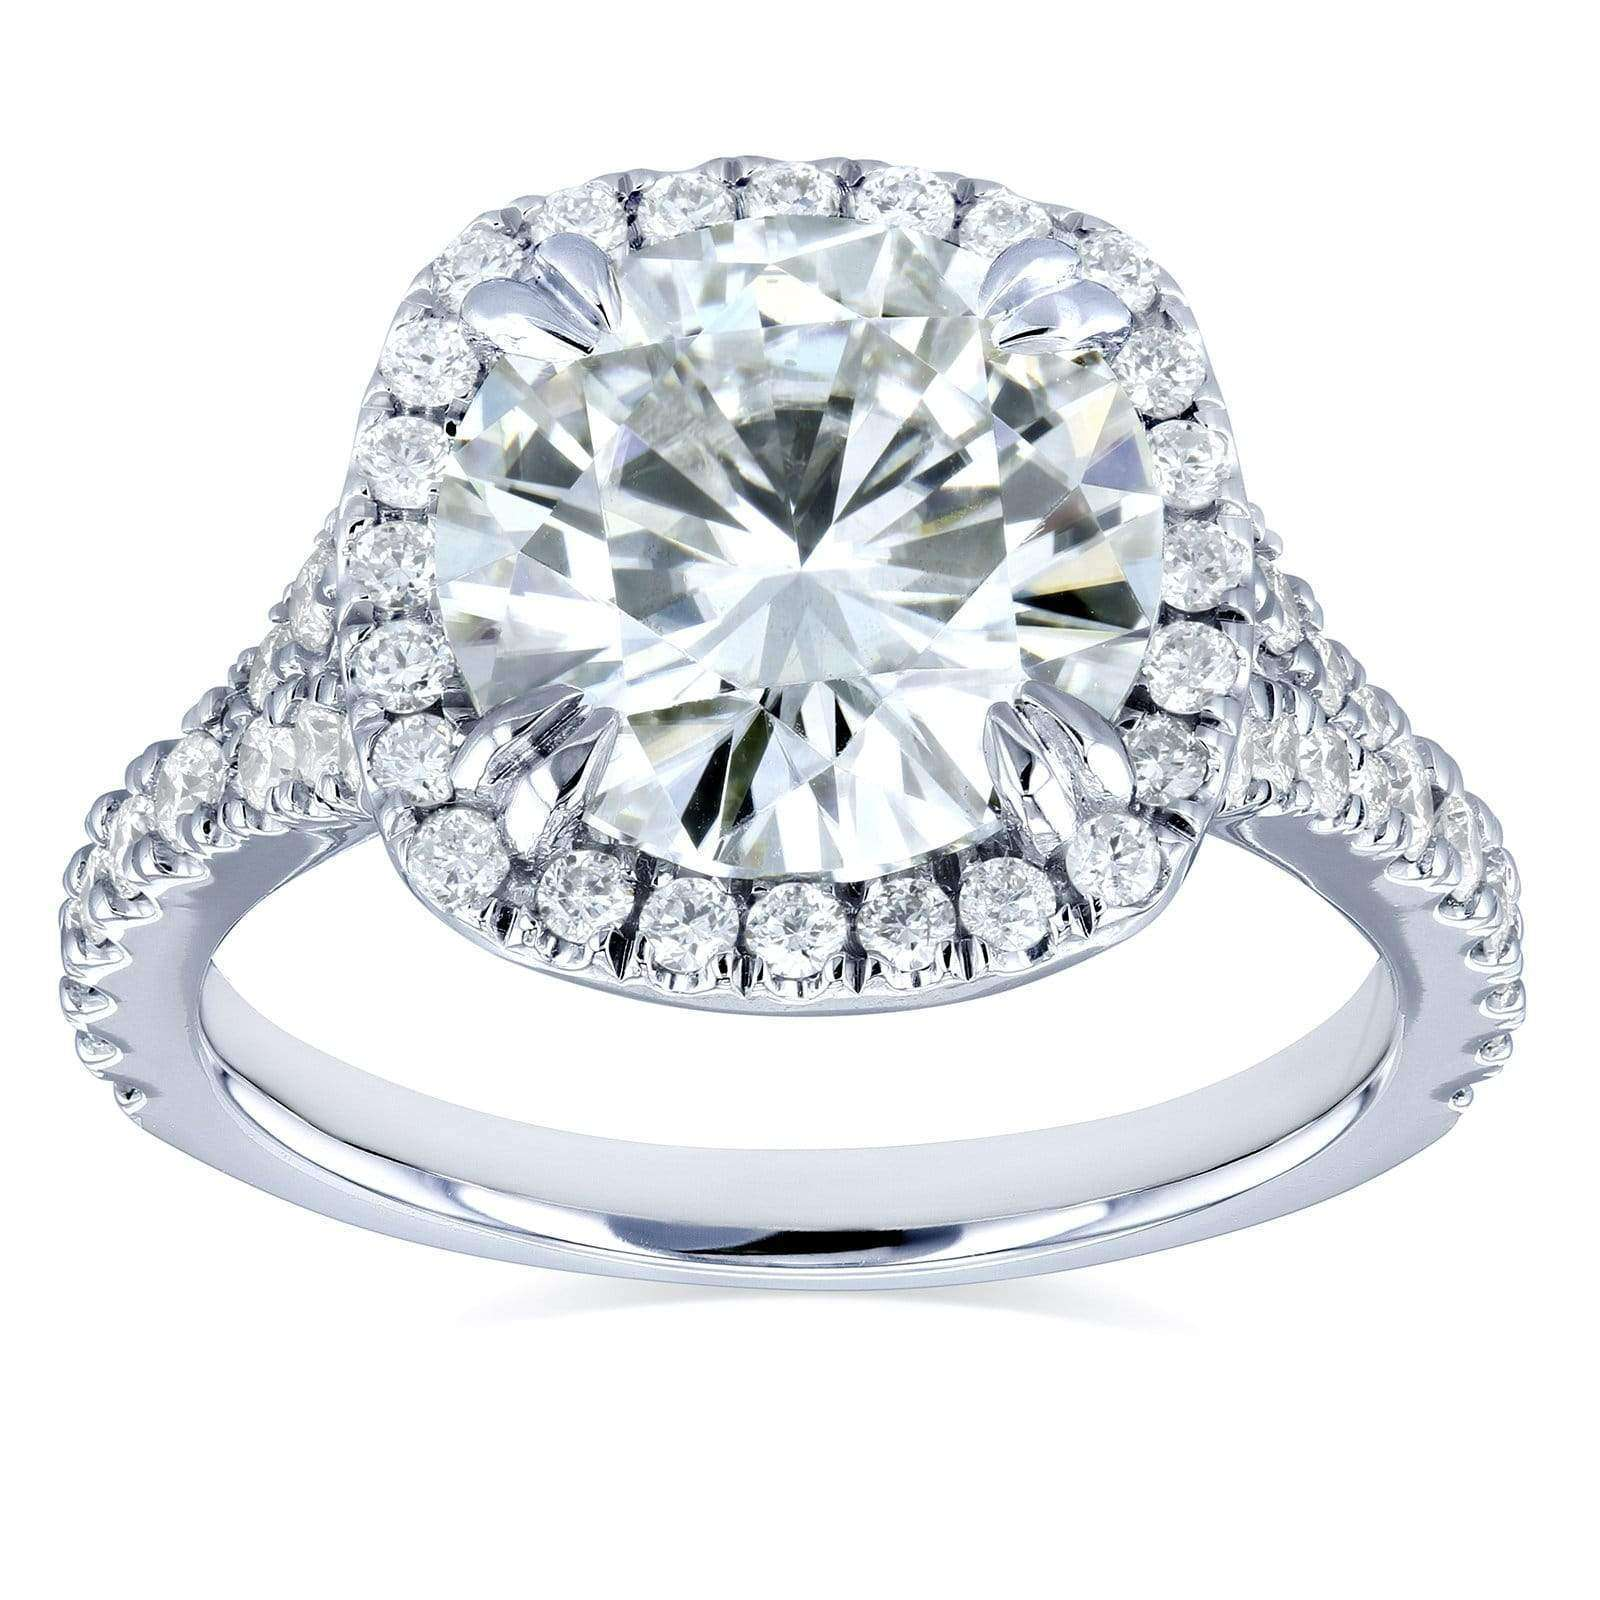 Coupons Round H-I Moissanite and Diamond Halo Engagement Ring 3 5/8 CTW 14k White Gold - 10